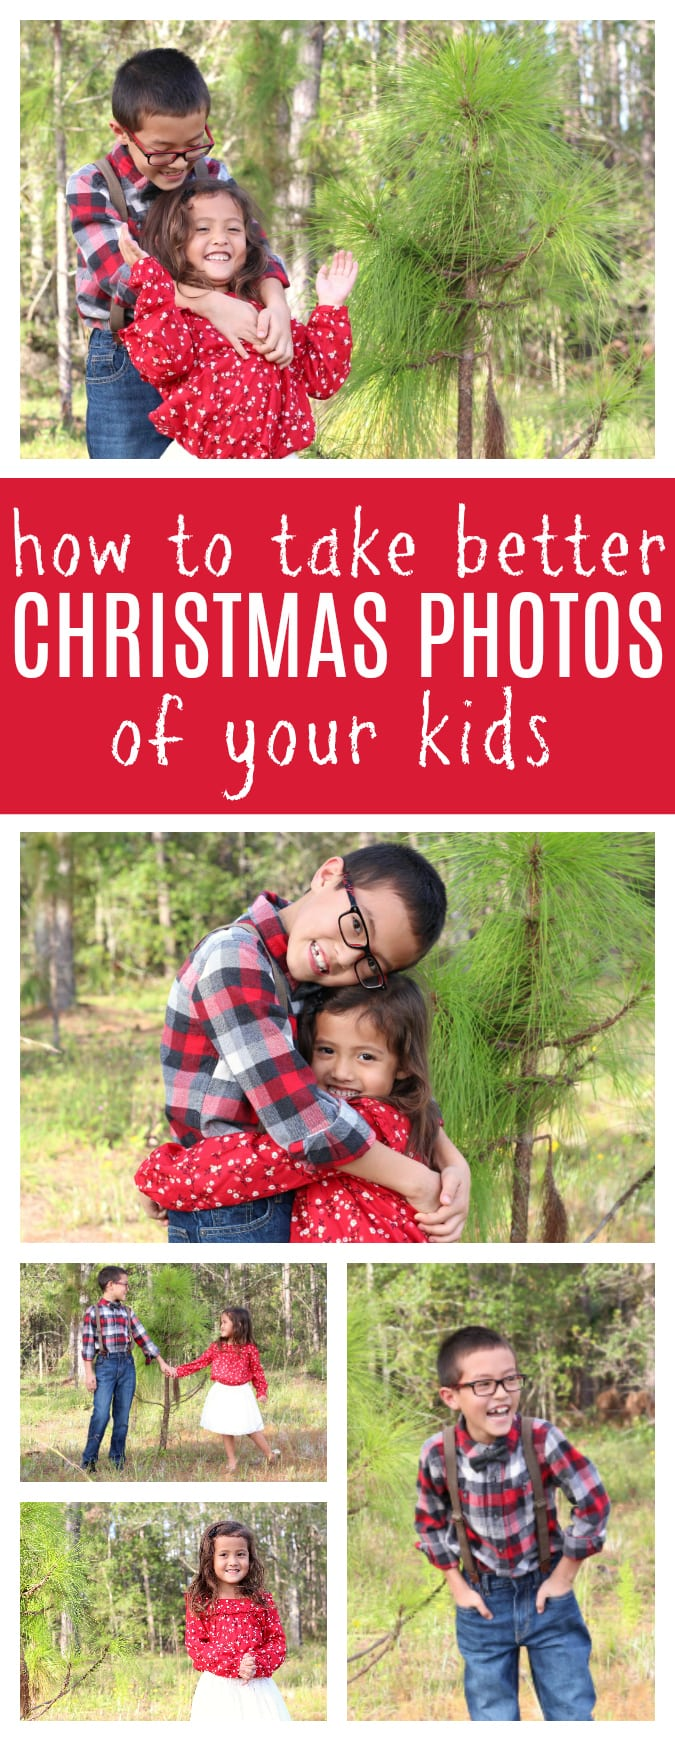 Tips to take better Christmas photos of your kids